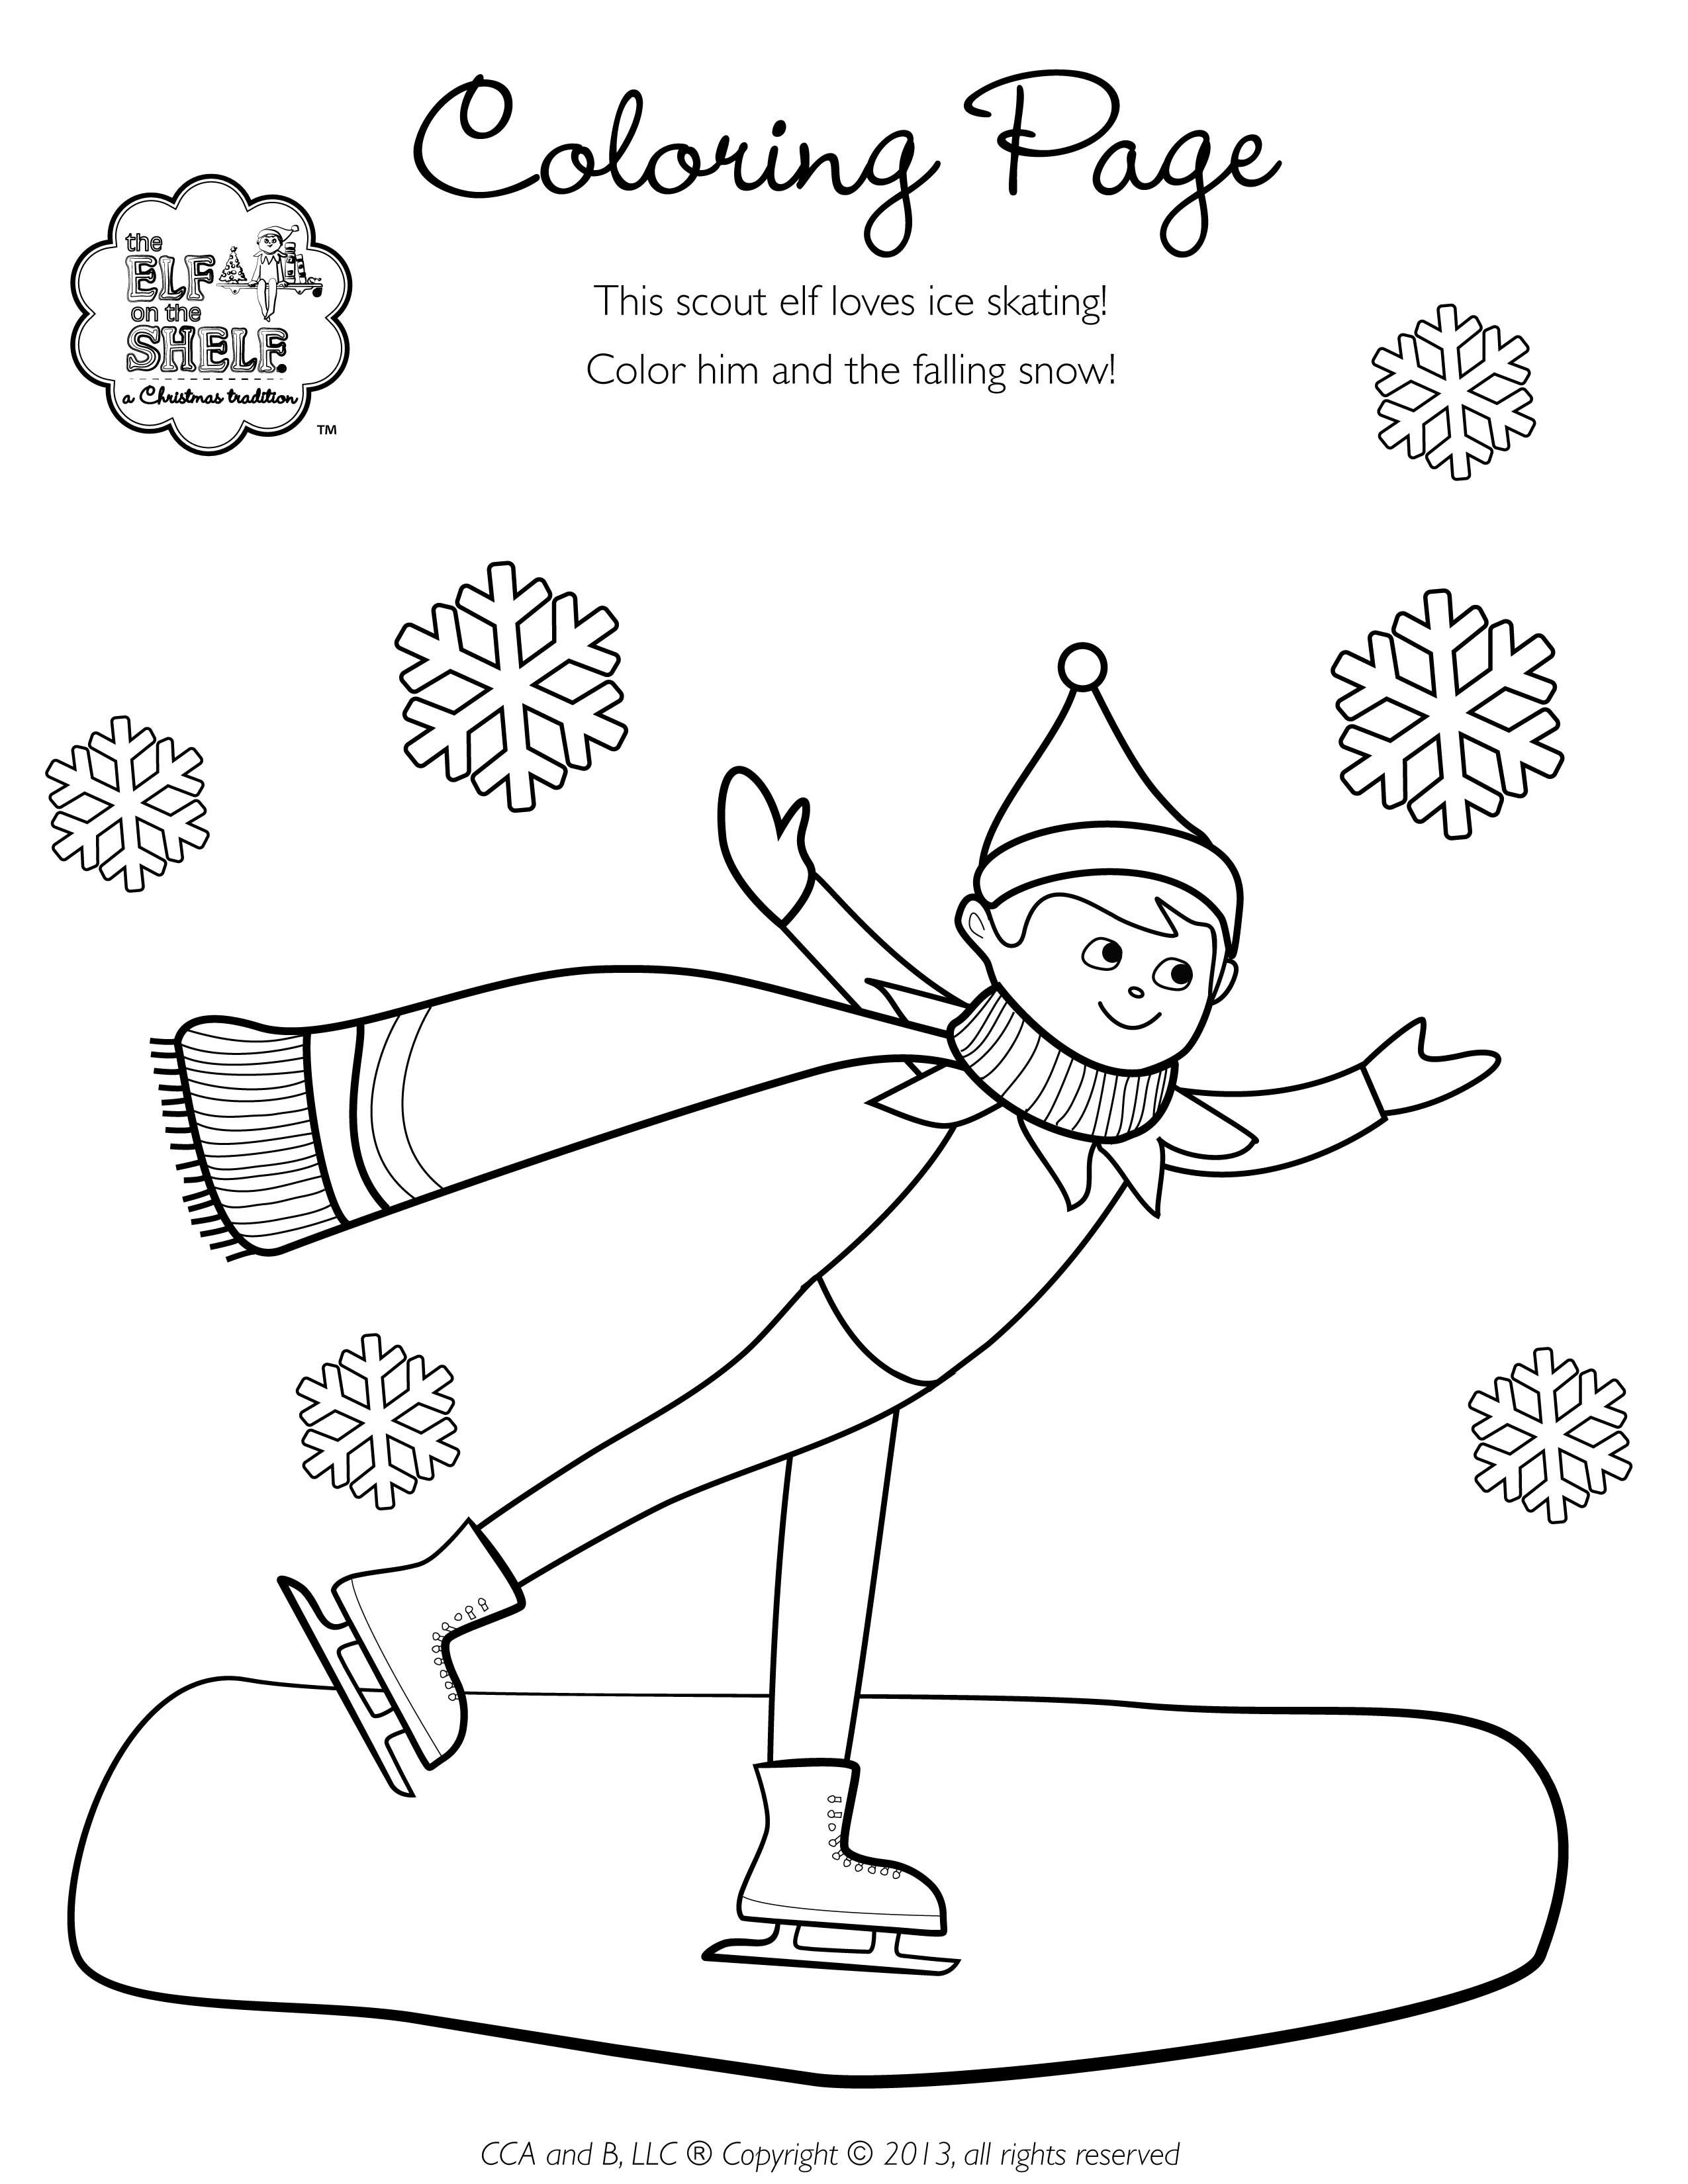 Christmas Coloring Pages North Pole With The Has Been Hit A Blizzard To Stay Warm And Avoid